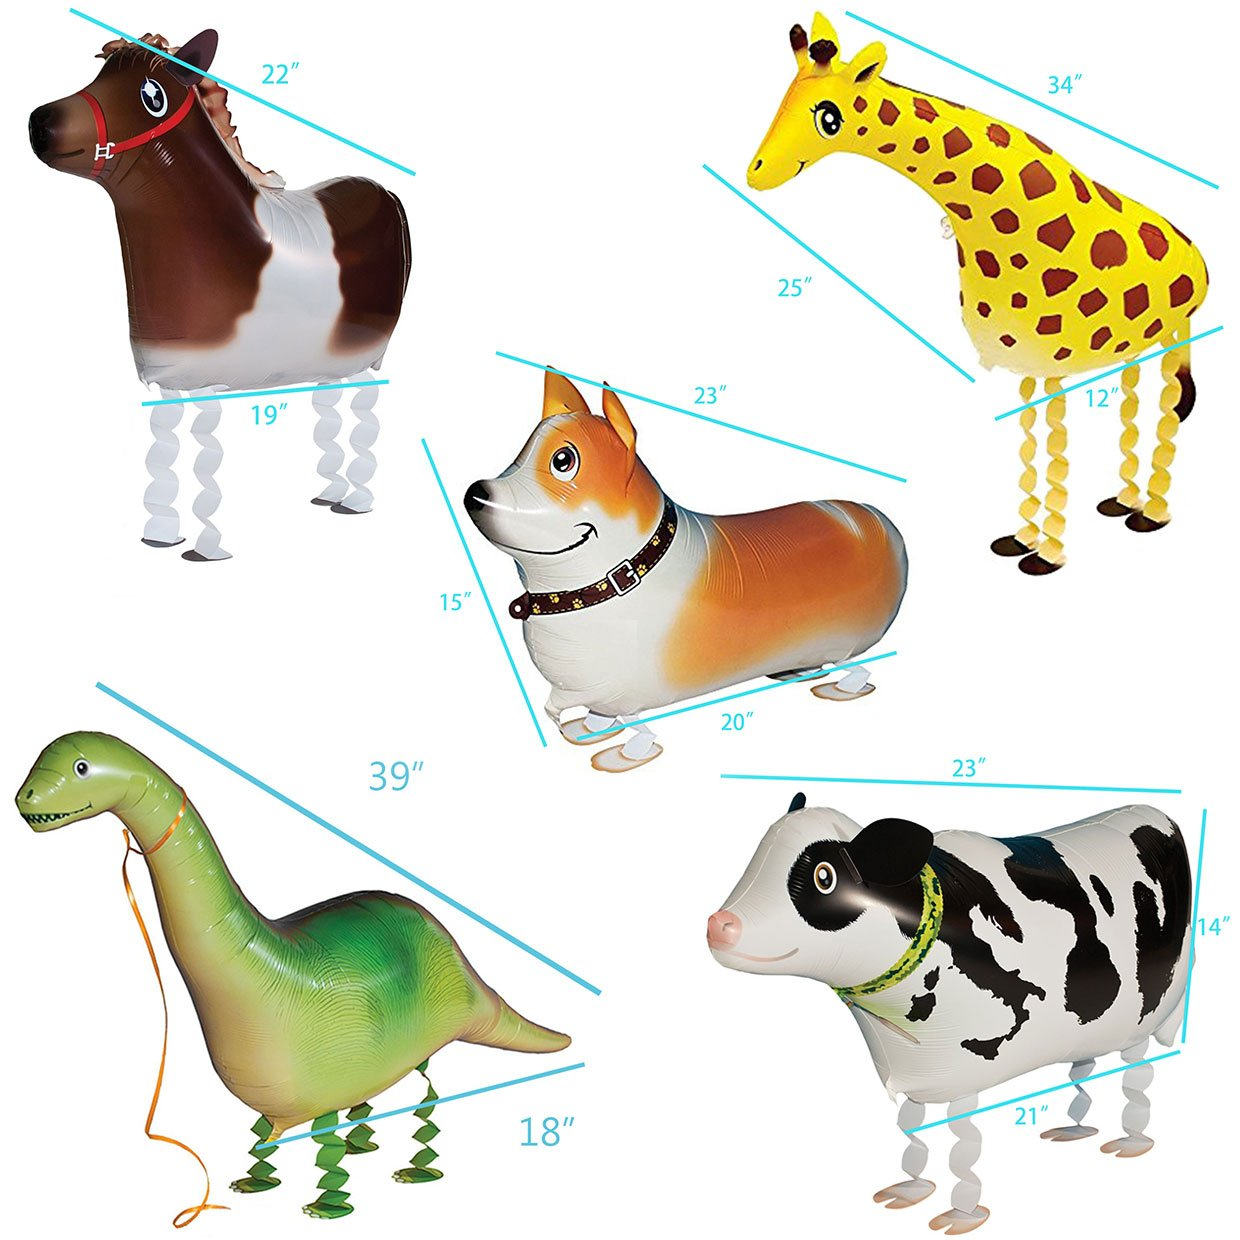 5pcs Walking Pet Animal Balloons Kids toys Party Favors Gifts for Girls Air Walker group-F by Merveilleux (Image #6)